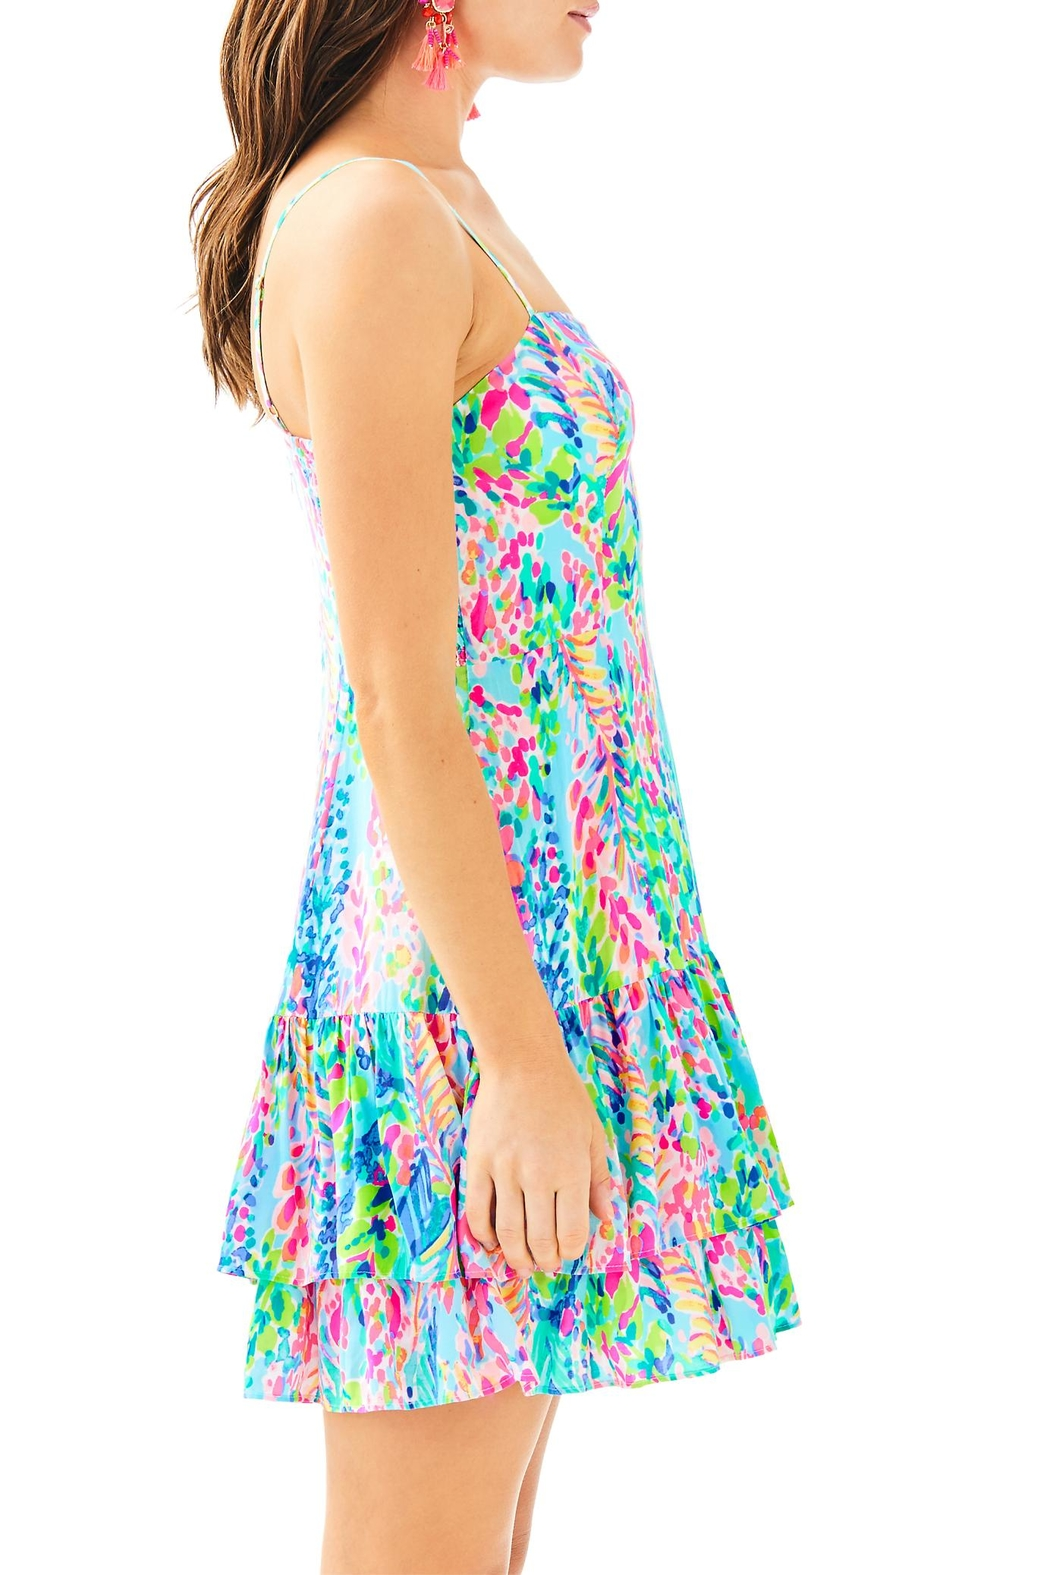 Lilly Pulitzer Morgana Dress - Side Cropped Image